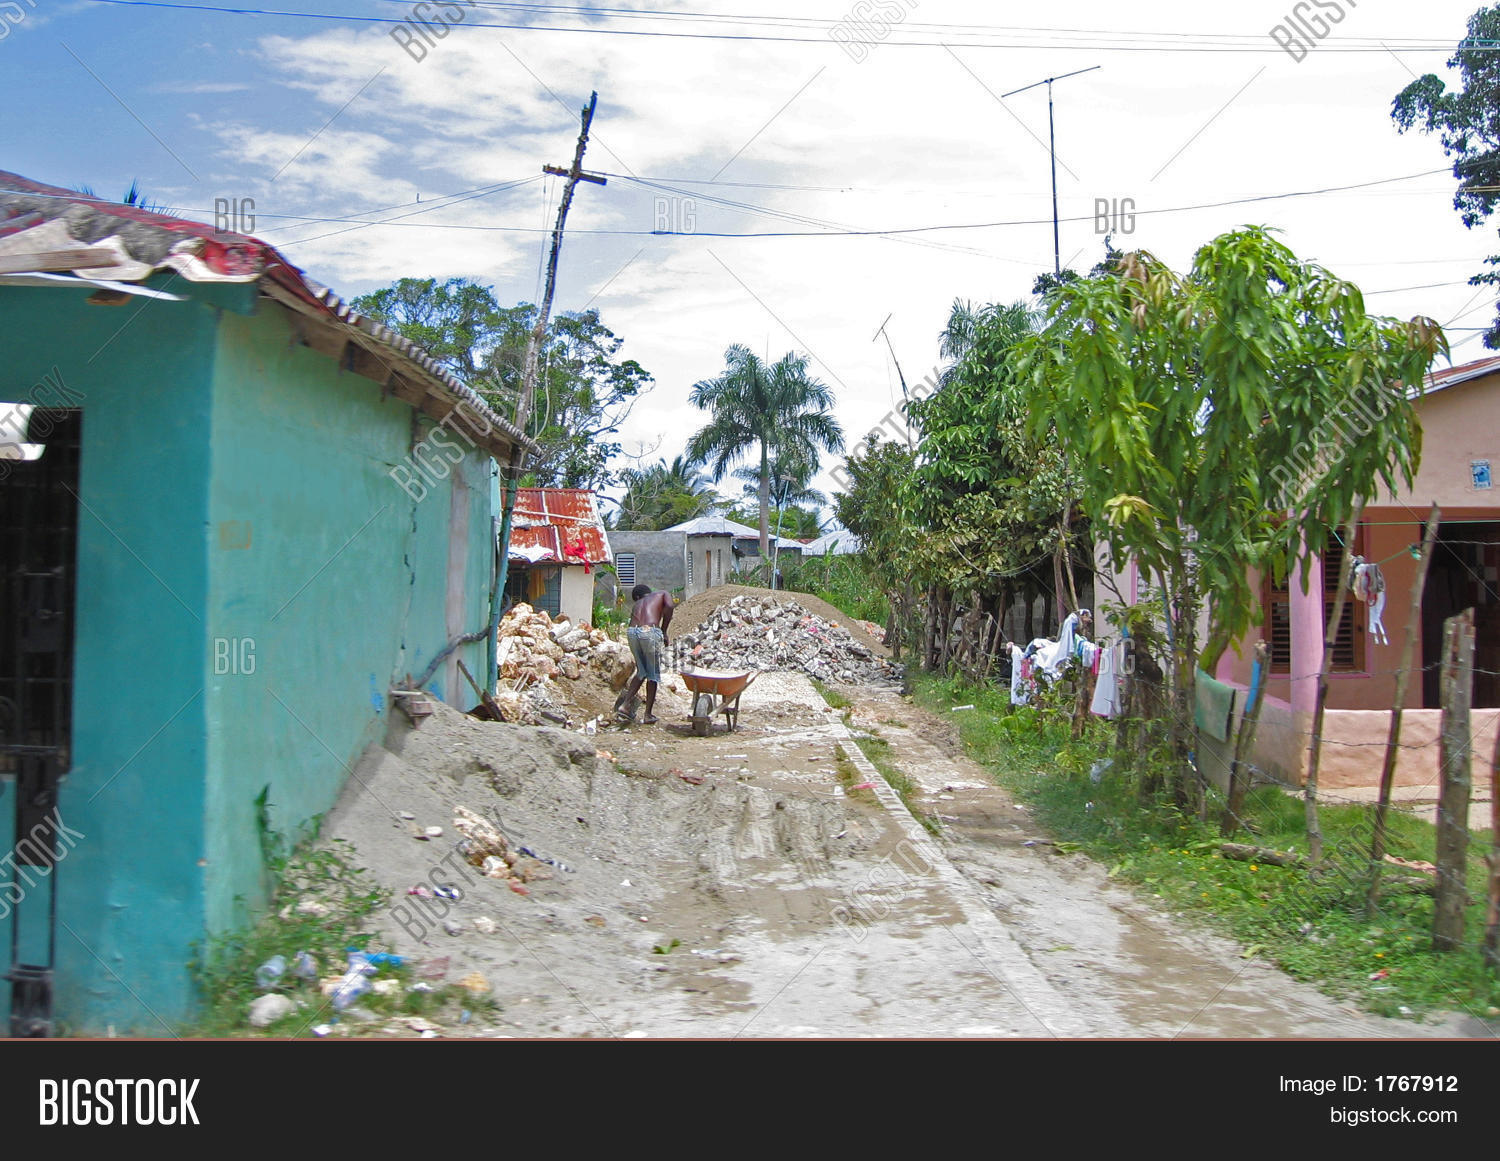 poverty in the dominican republic and in mexico history essay Our programs are fighting to break the cycle of poverty for kids in dominican republic find out how you can help these children.